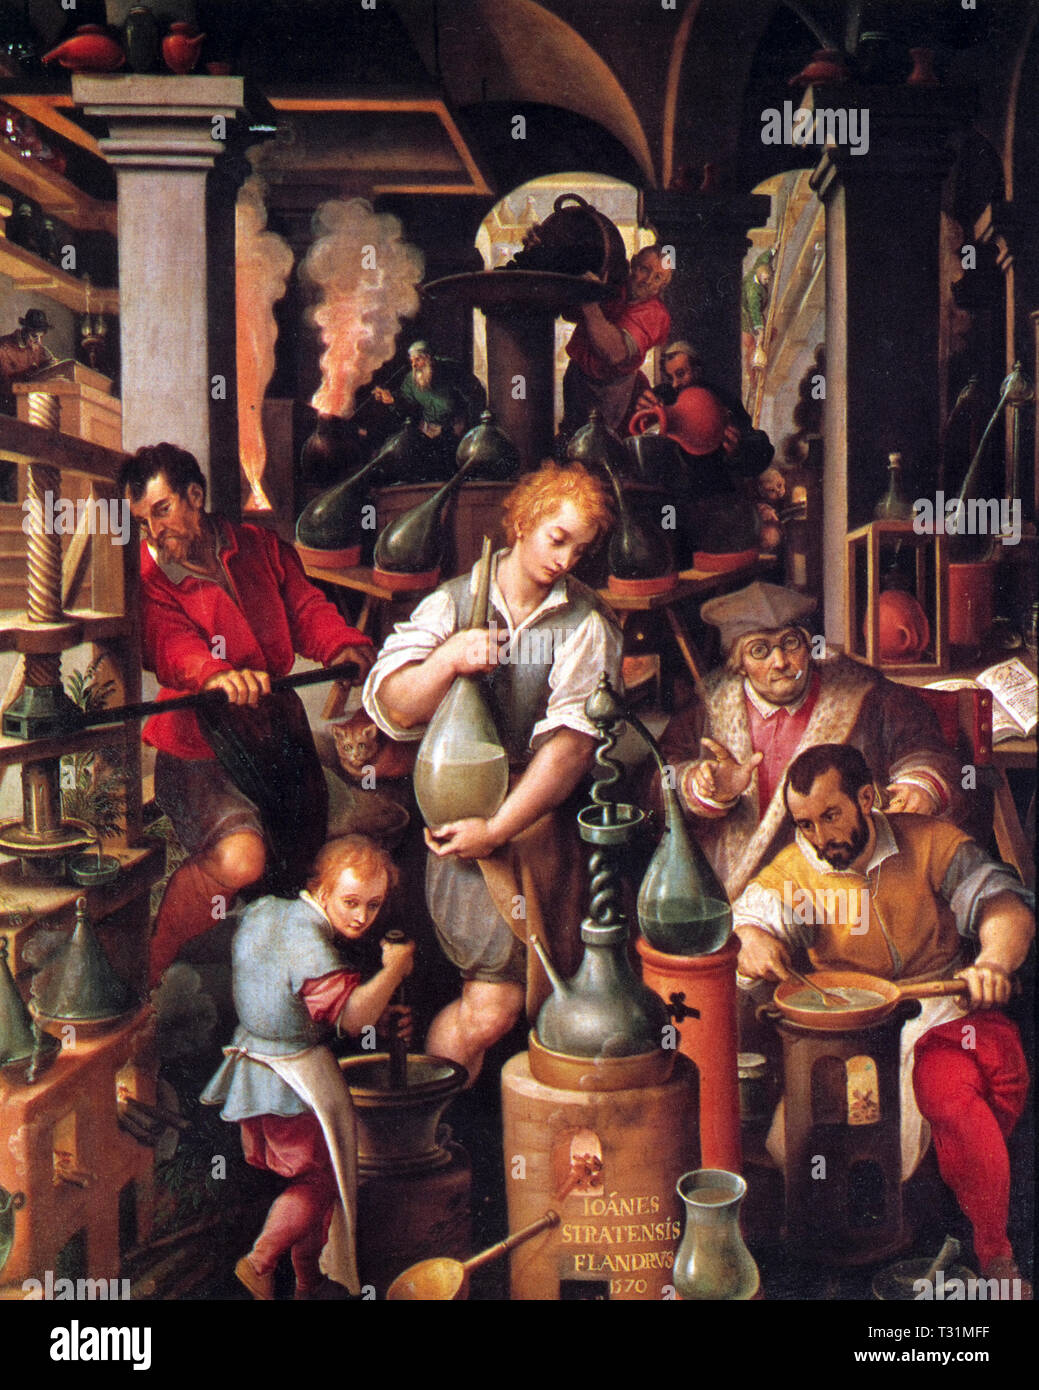 Italy Florence Palazzo Vecchio - This painting by the Flemish painter Giovanni Stradano, Italianized name by Jan van der Straet (Bruges, 1523 - Florence, 1605), depicts the alchemist's laboratory 1580 - Stock Image